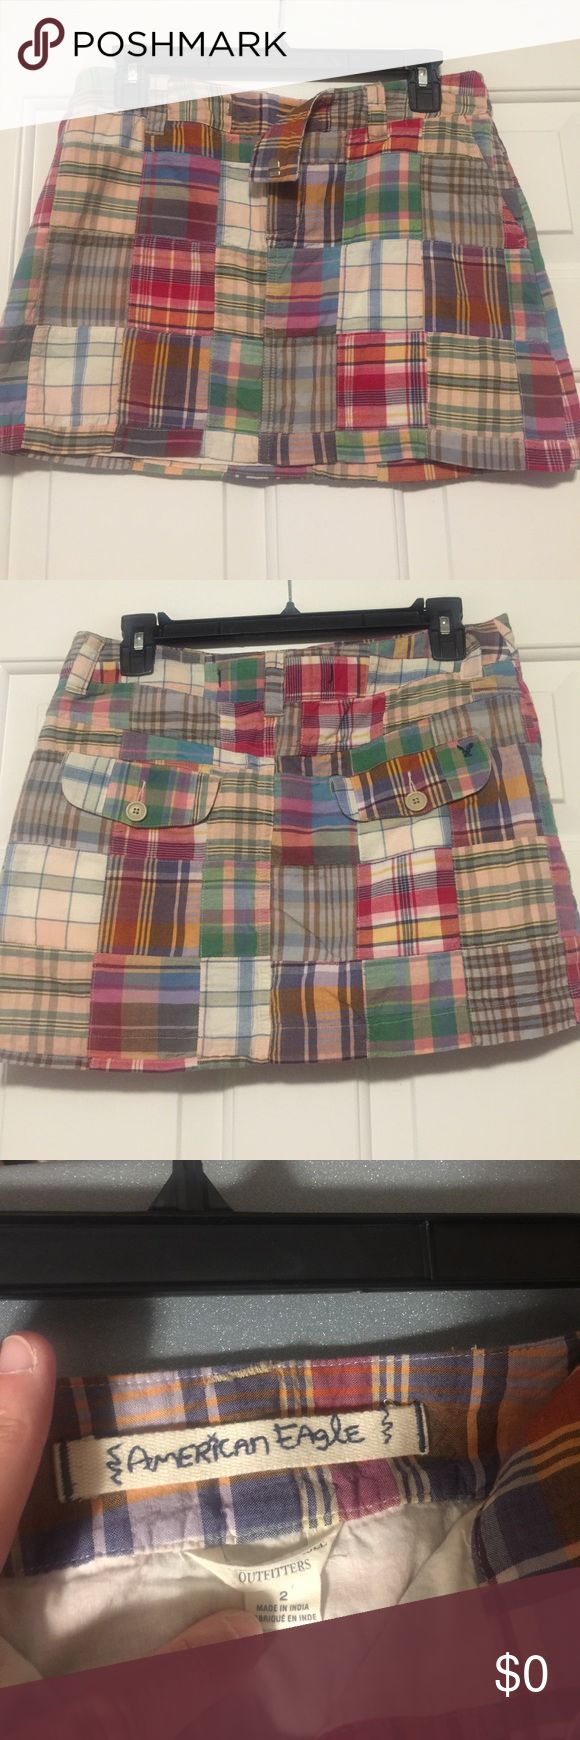 "American Eagle Patchwork Skirt American Eagle Outfitters multi-colored Patchwork Skirt. Pockets in front and two pockets in back. Great condition. Length 12"" American Eagle Outfitters Skirts Mini"